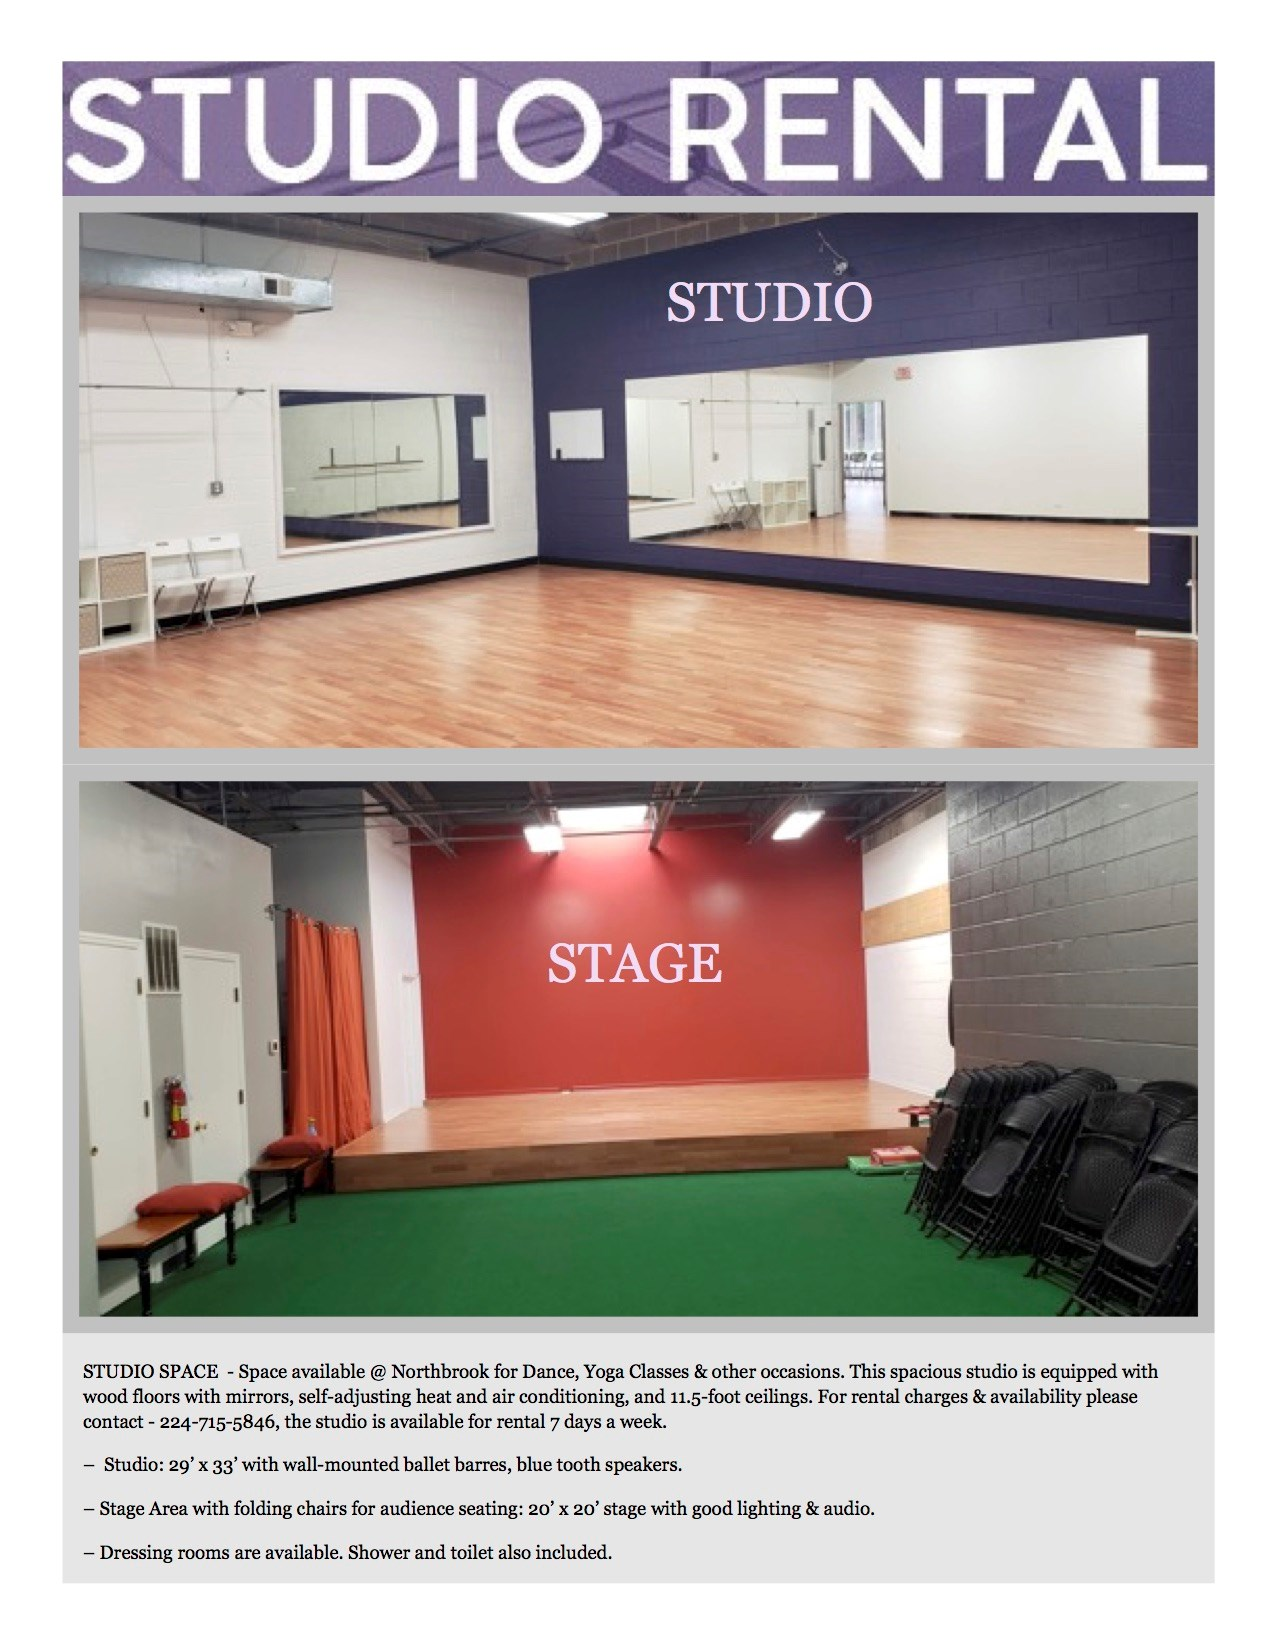 Studio Rental   0 BHK Commercial Space in Northbrook, IL